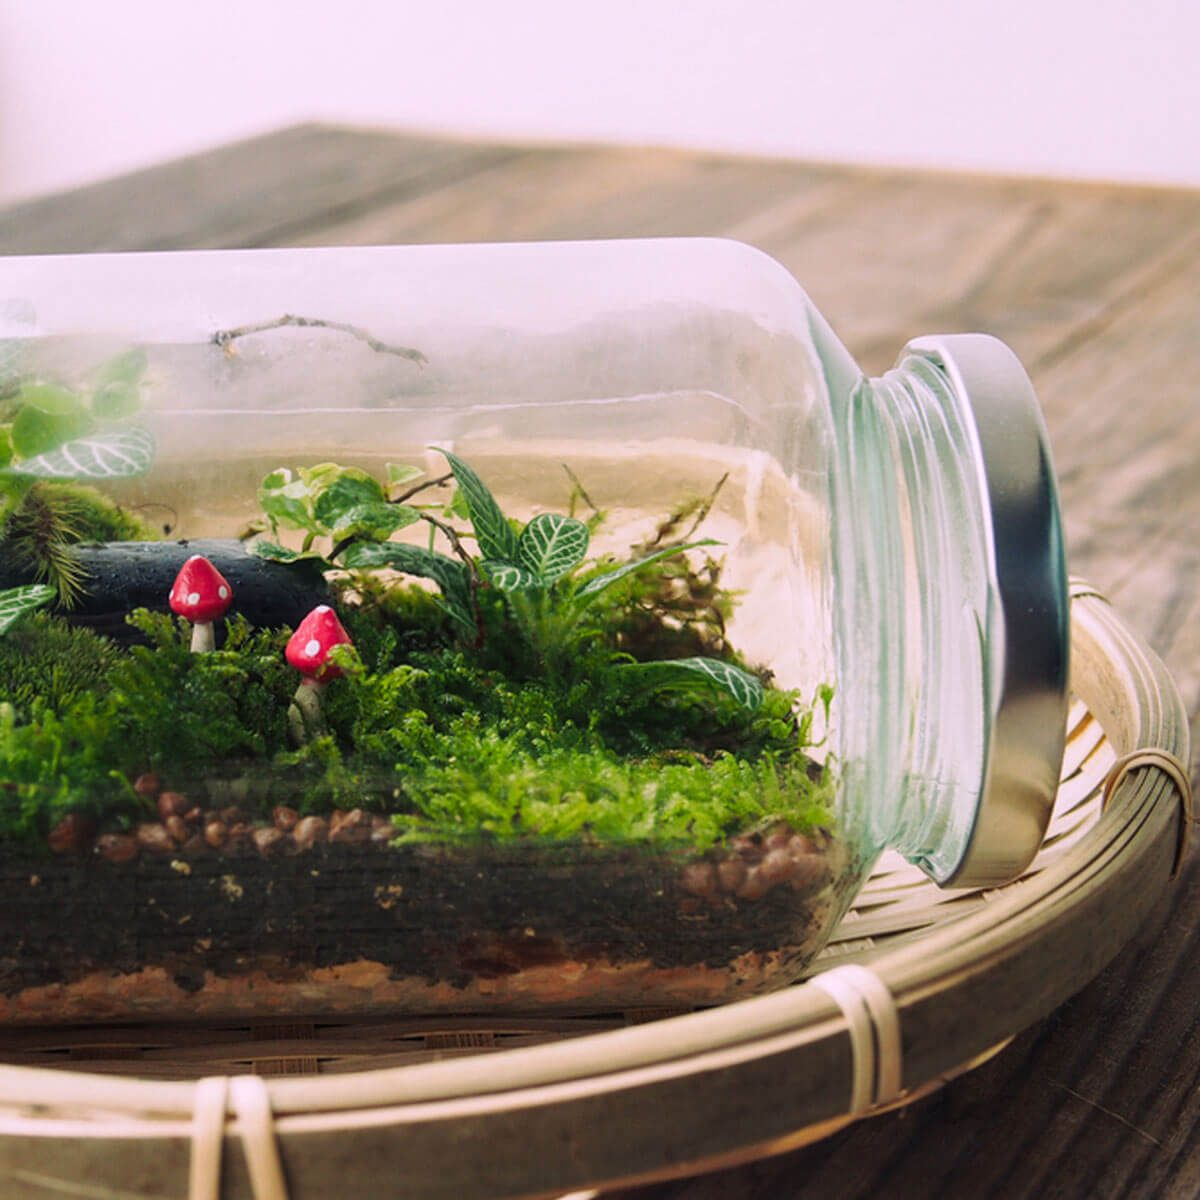 12 Tips For Making A Diy Terrarium How To Build A Terrarium The